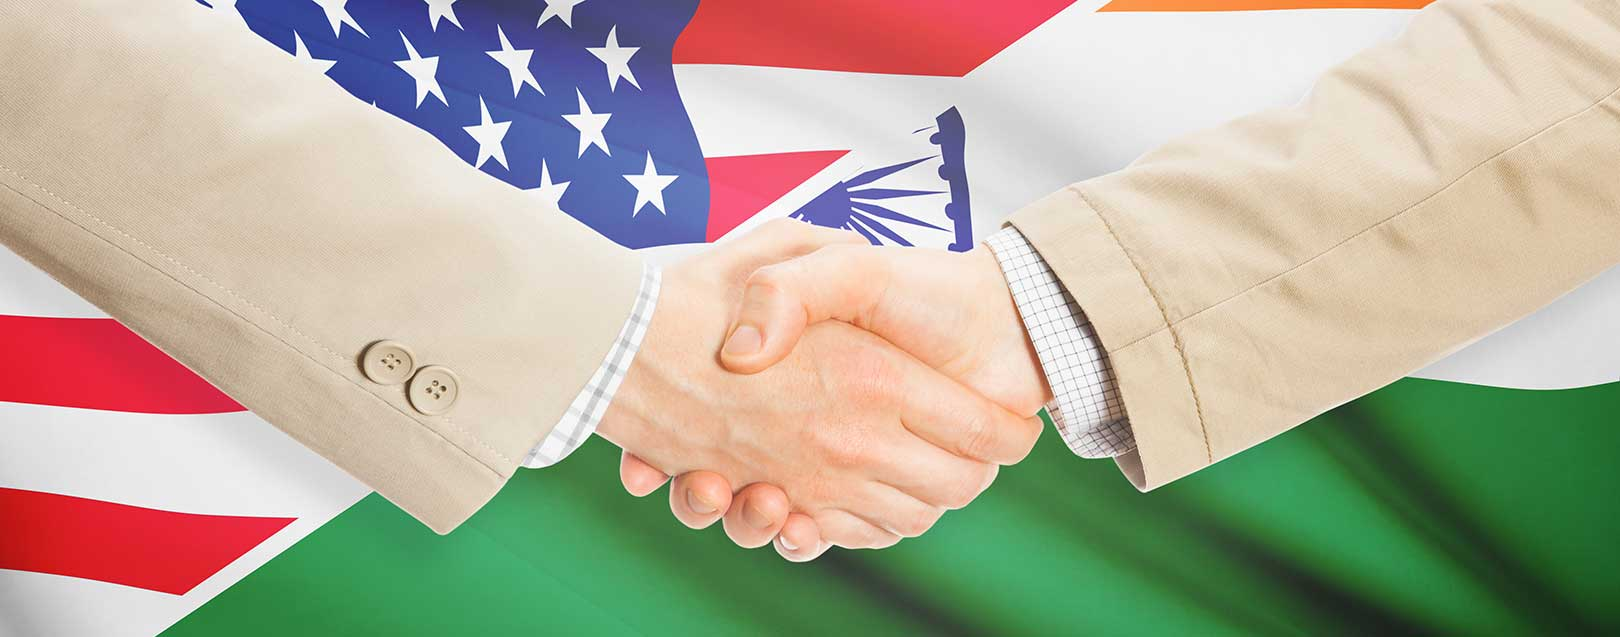 Trump administration has recognised India as a major foreign policy priority: Richard Verma